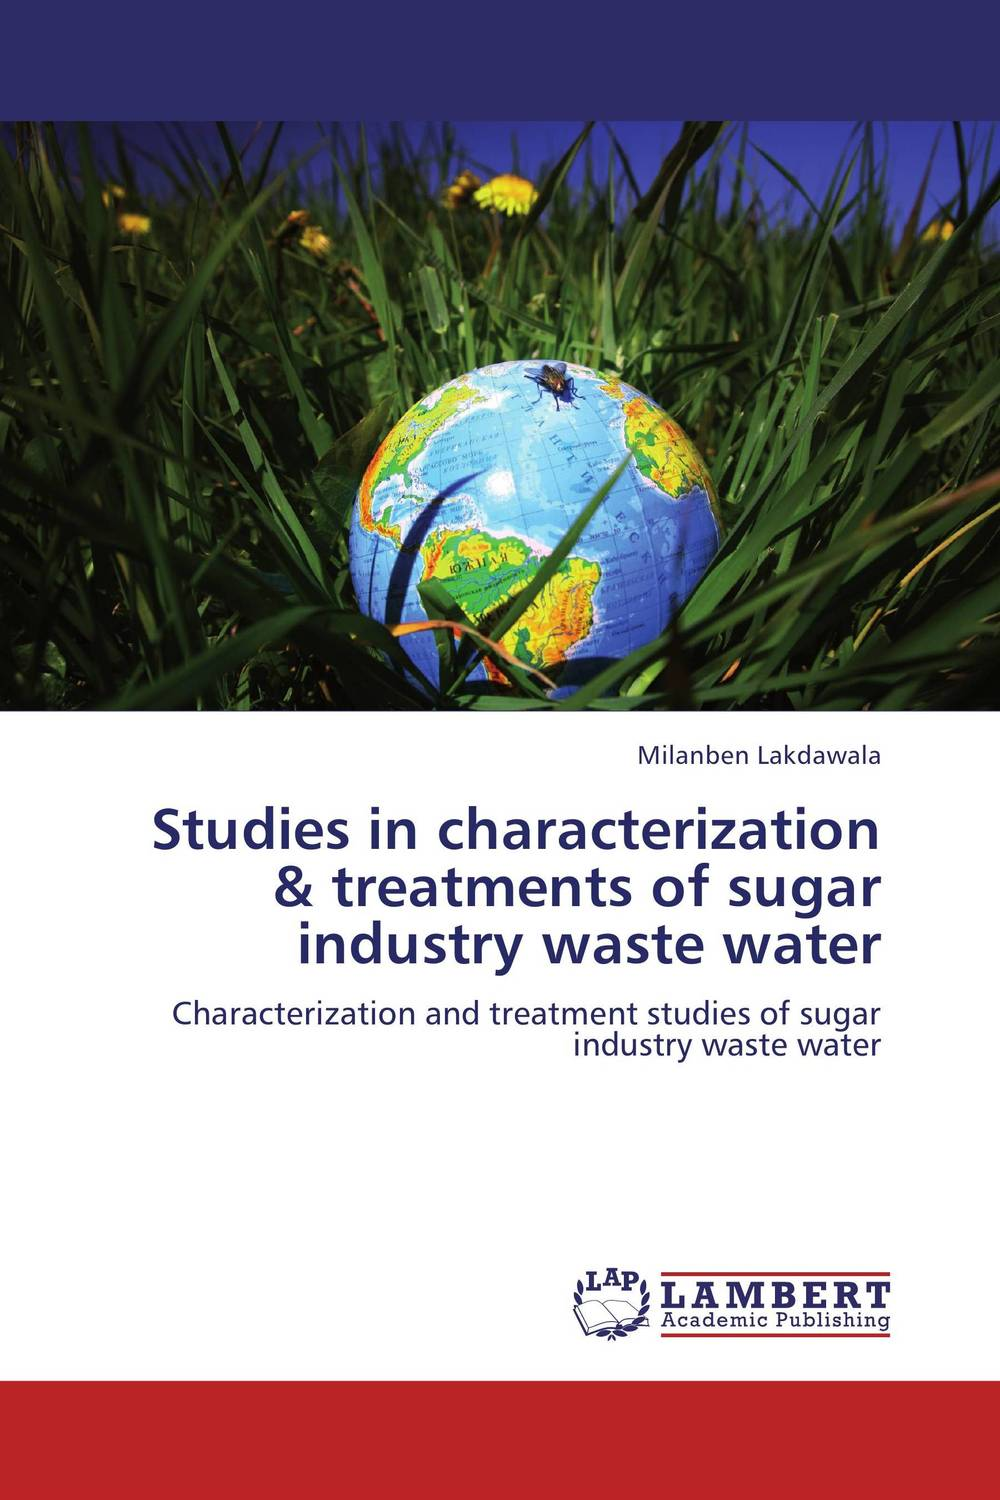 Studies in characterization & treatments of sugar industry waste water rabia nazir faiza ashfaq and awais shaukat catalytic treatment of dyeing industry waste water